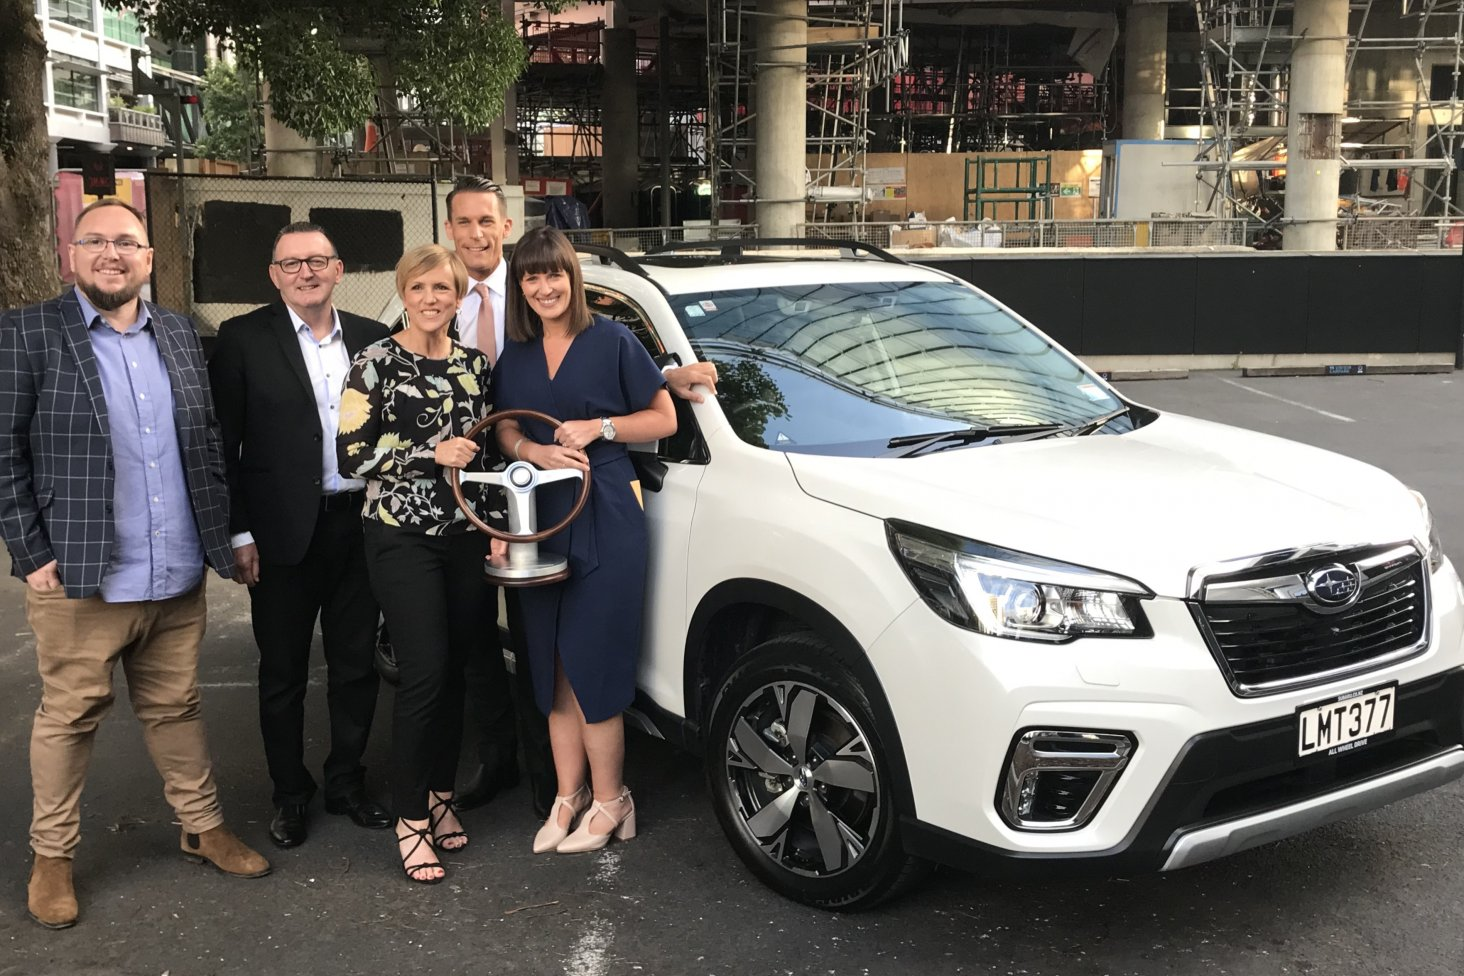 At tonight's NZ Car of the Year presentation are NZ Motoring Writers' Guild president Richard Edwards, Subaru New Zealand Managing Director Wallis Dumper, Seven Sharp hosts Hilary Barry and Jeremy Wells and Subaru's Marketing Manager Daile Stephens.